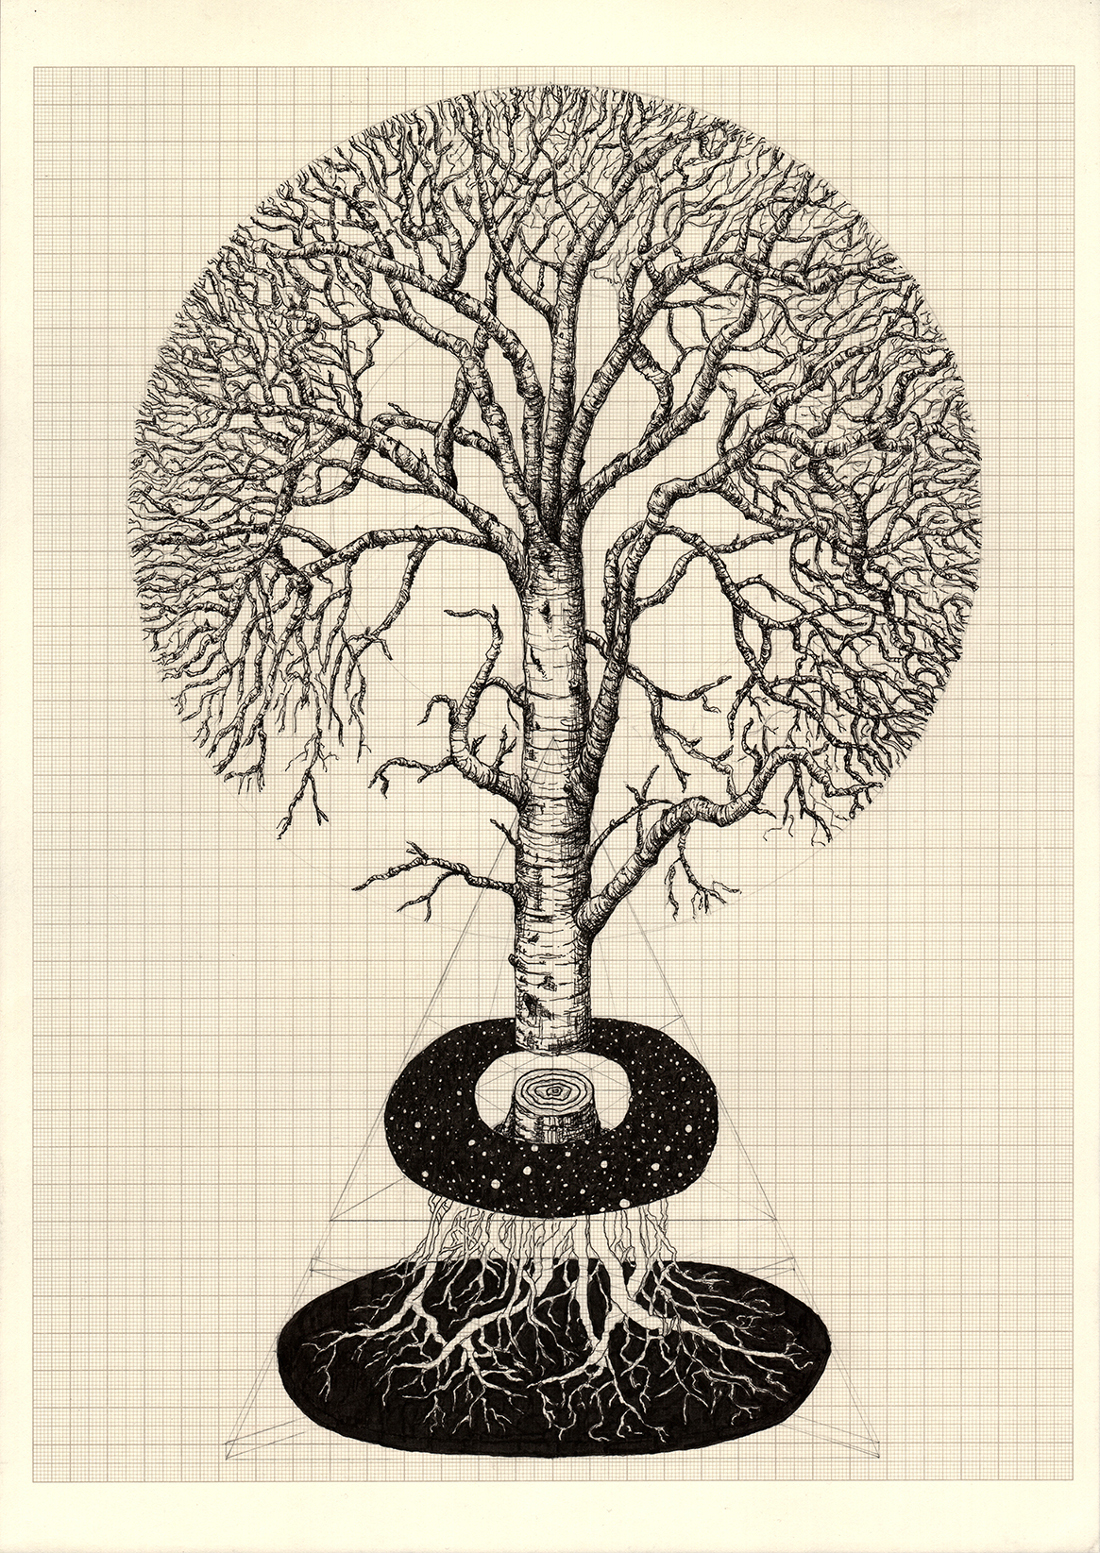 The World Tree, graphite and indian ink on graph paper, 42cm x 29.7cm, 2015